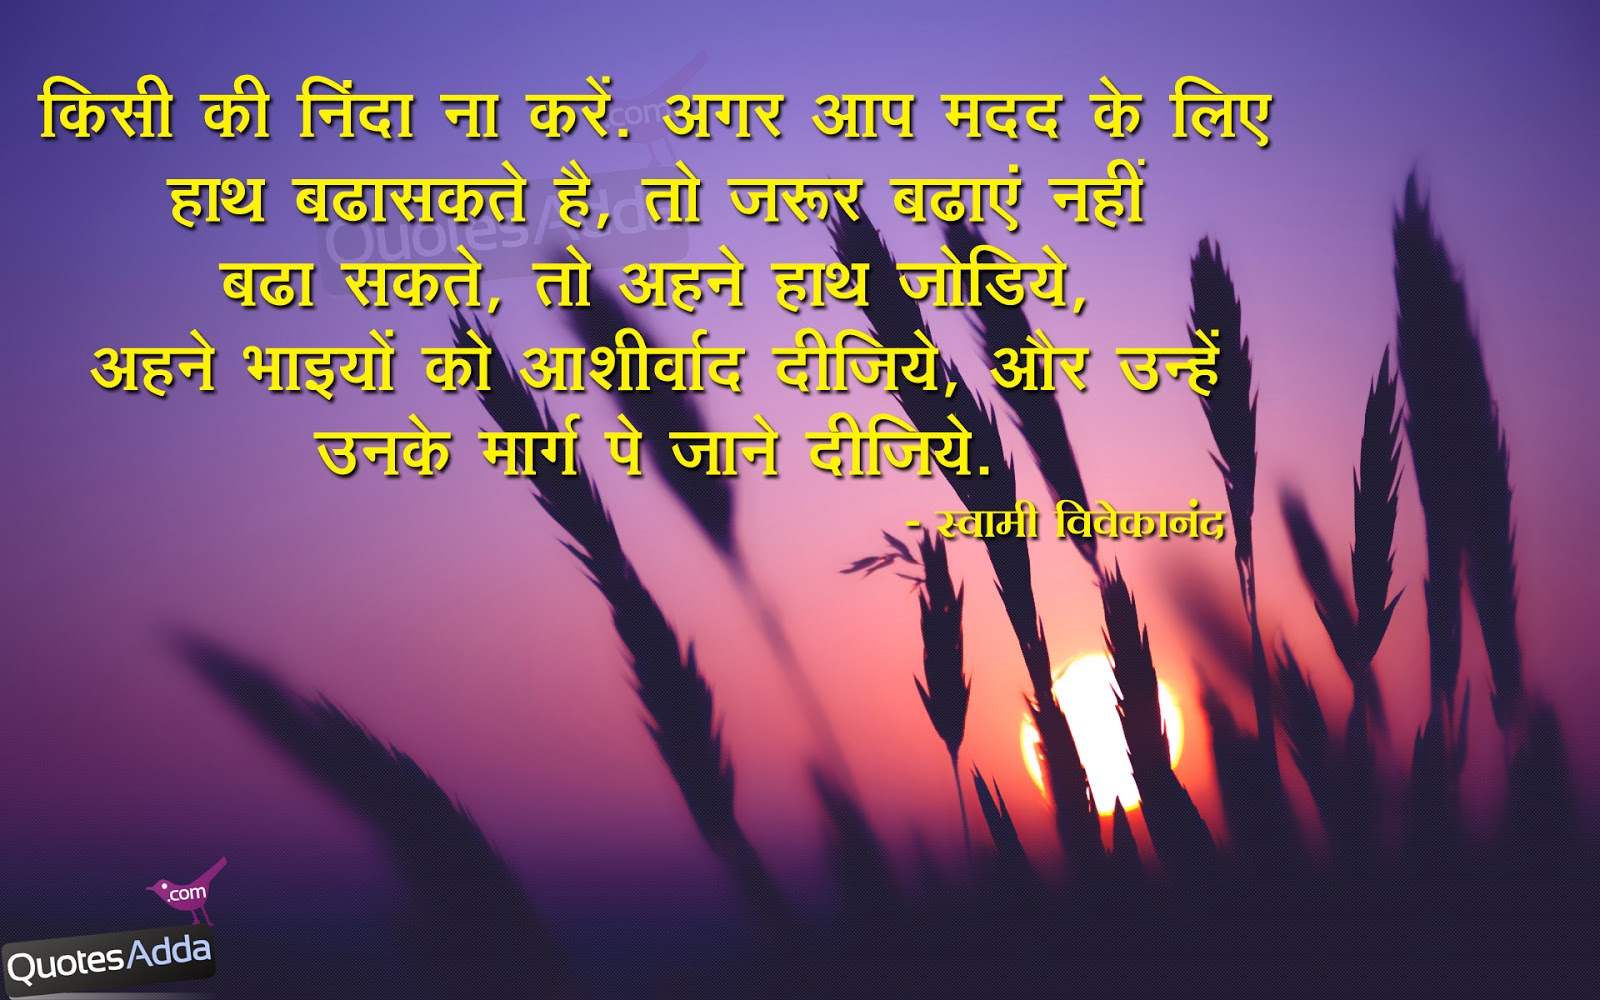 Motivational Quotes In Hindi Language Quotesgram 2 Quotes